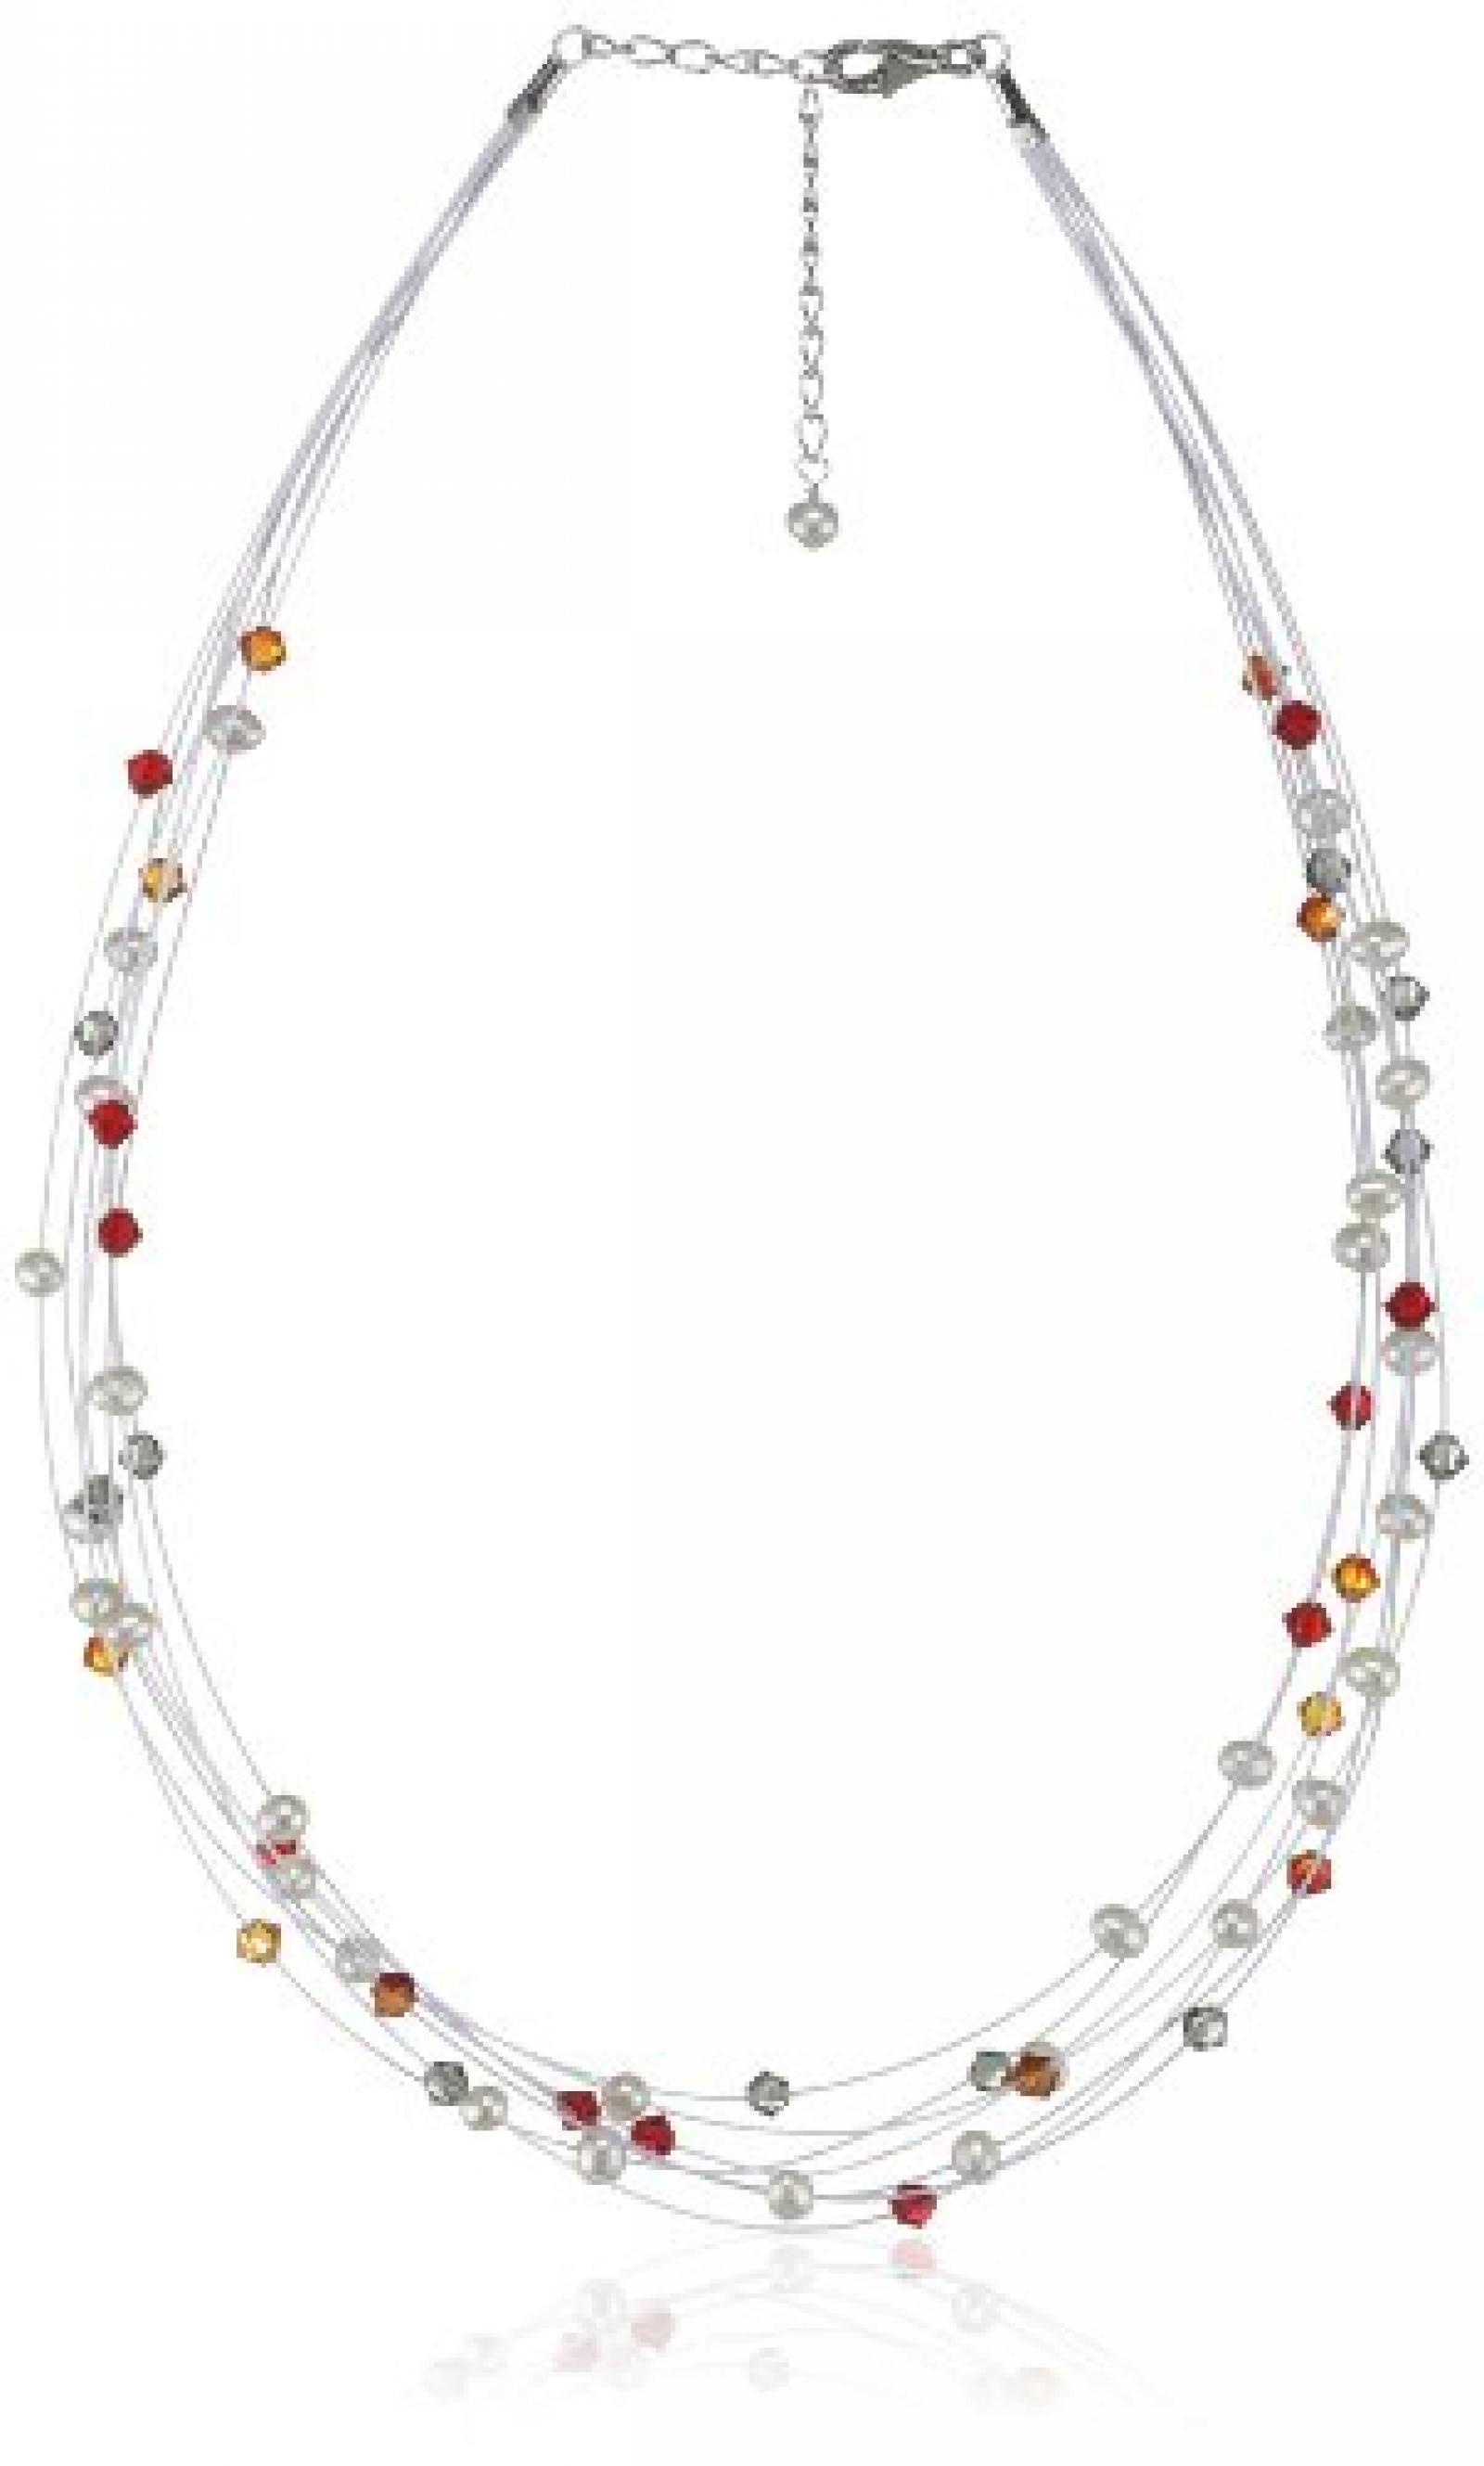 Valero Pearls Fashion Collection Damen-Kette Hochwertige Süßwasser-Zuchtperlen in ca.  6 mm Oval weiß 925 Sterling Silber   Swarovski Elements rot / orange 43 cm + 5 cm Verlängerung   400551